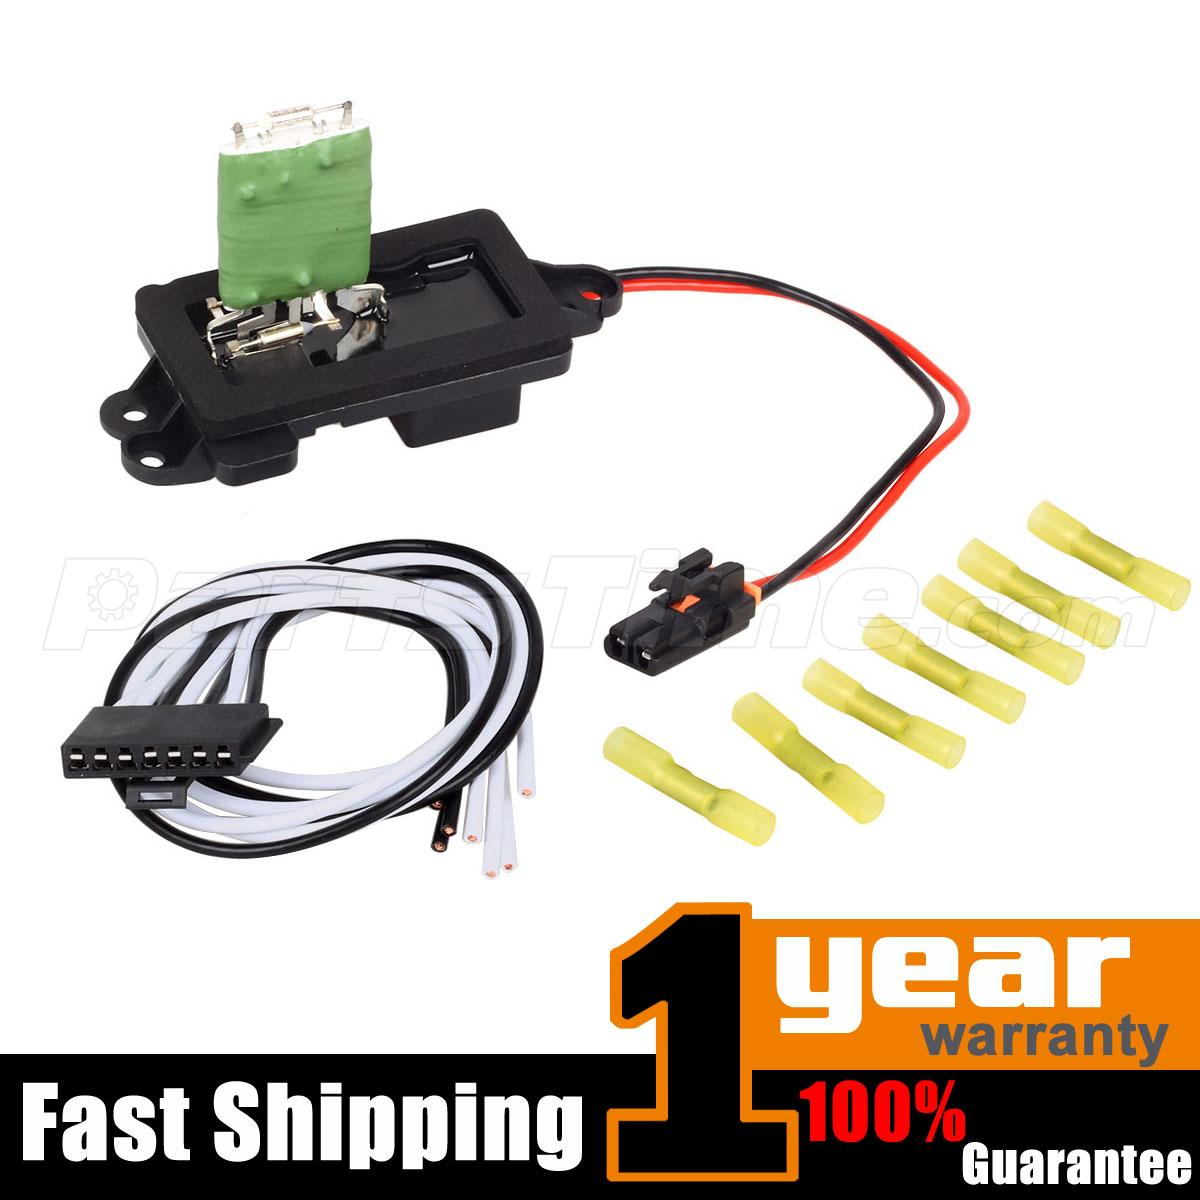 145392 1?rn=2668210 89019088 heater blower motor resistor for cadillac chevy gmc w 7-wire blower motor resistor harness at fashall.co